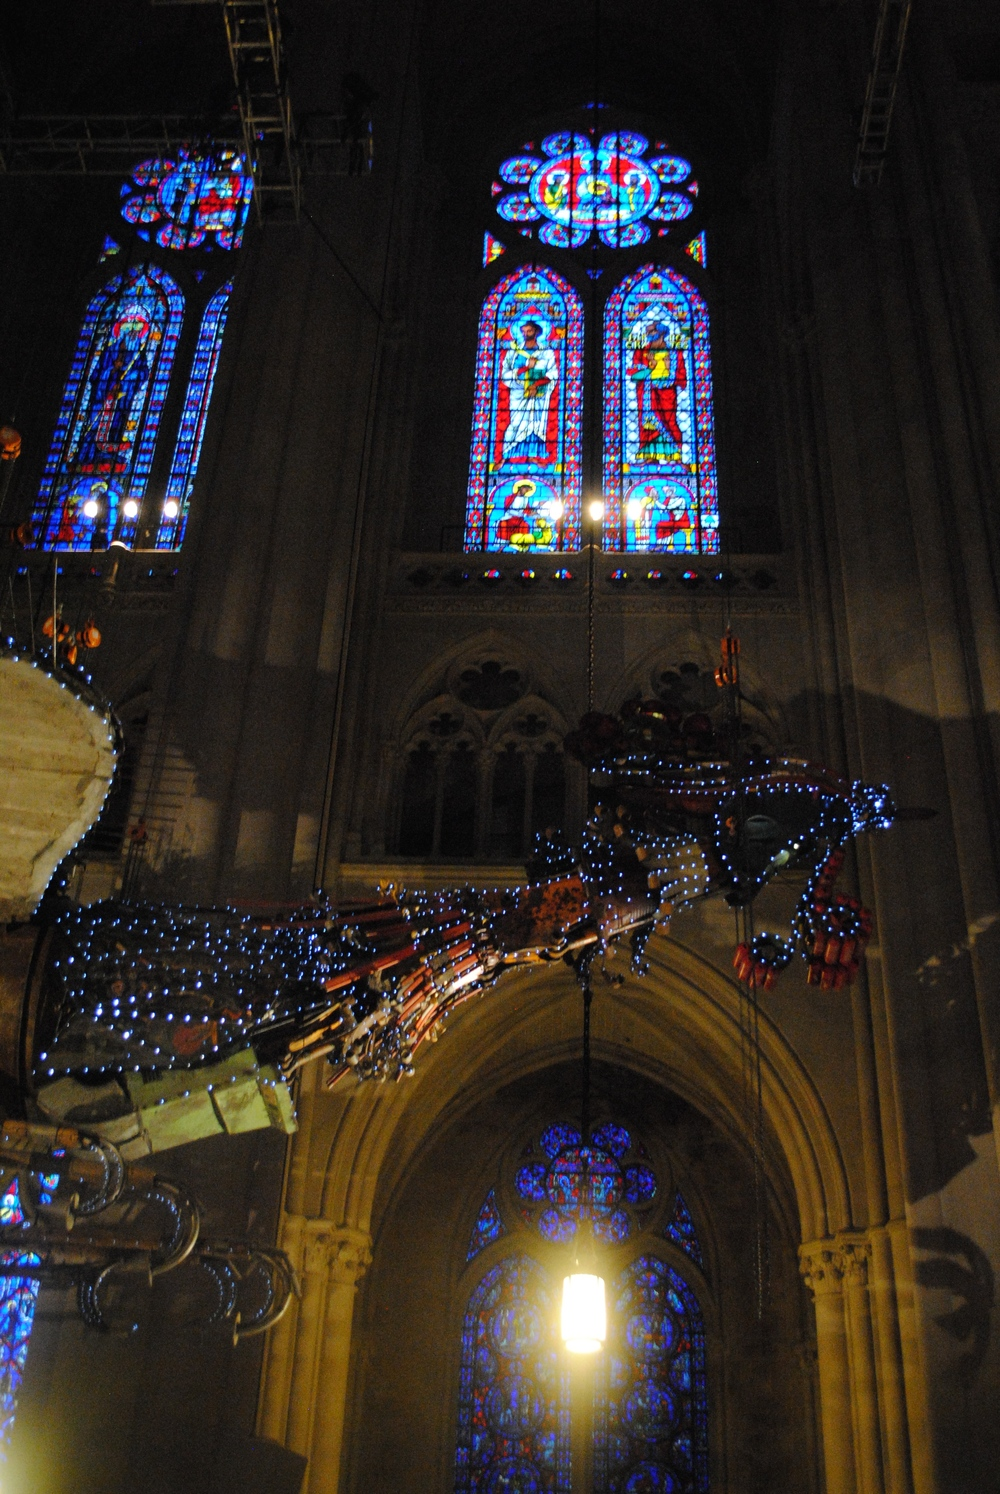 Phoenix and Stained Glass  ,    in Saint John's Cathedral NYC, October 26th 2014 (Phoenix by Xu Bing, photograph by Hazel Renee)